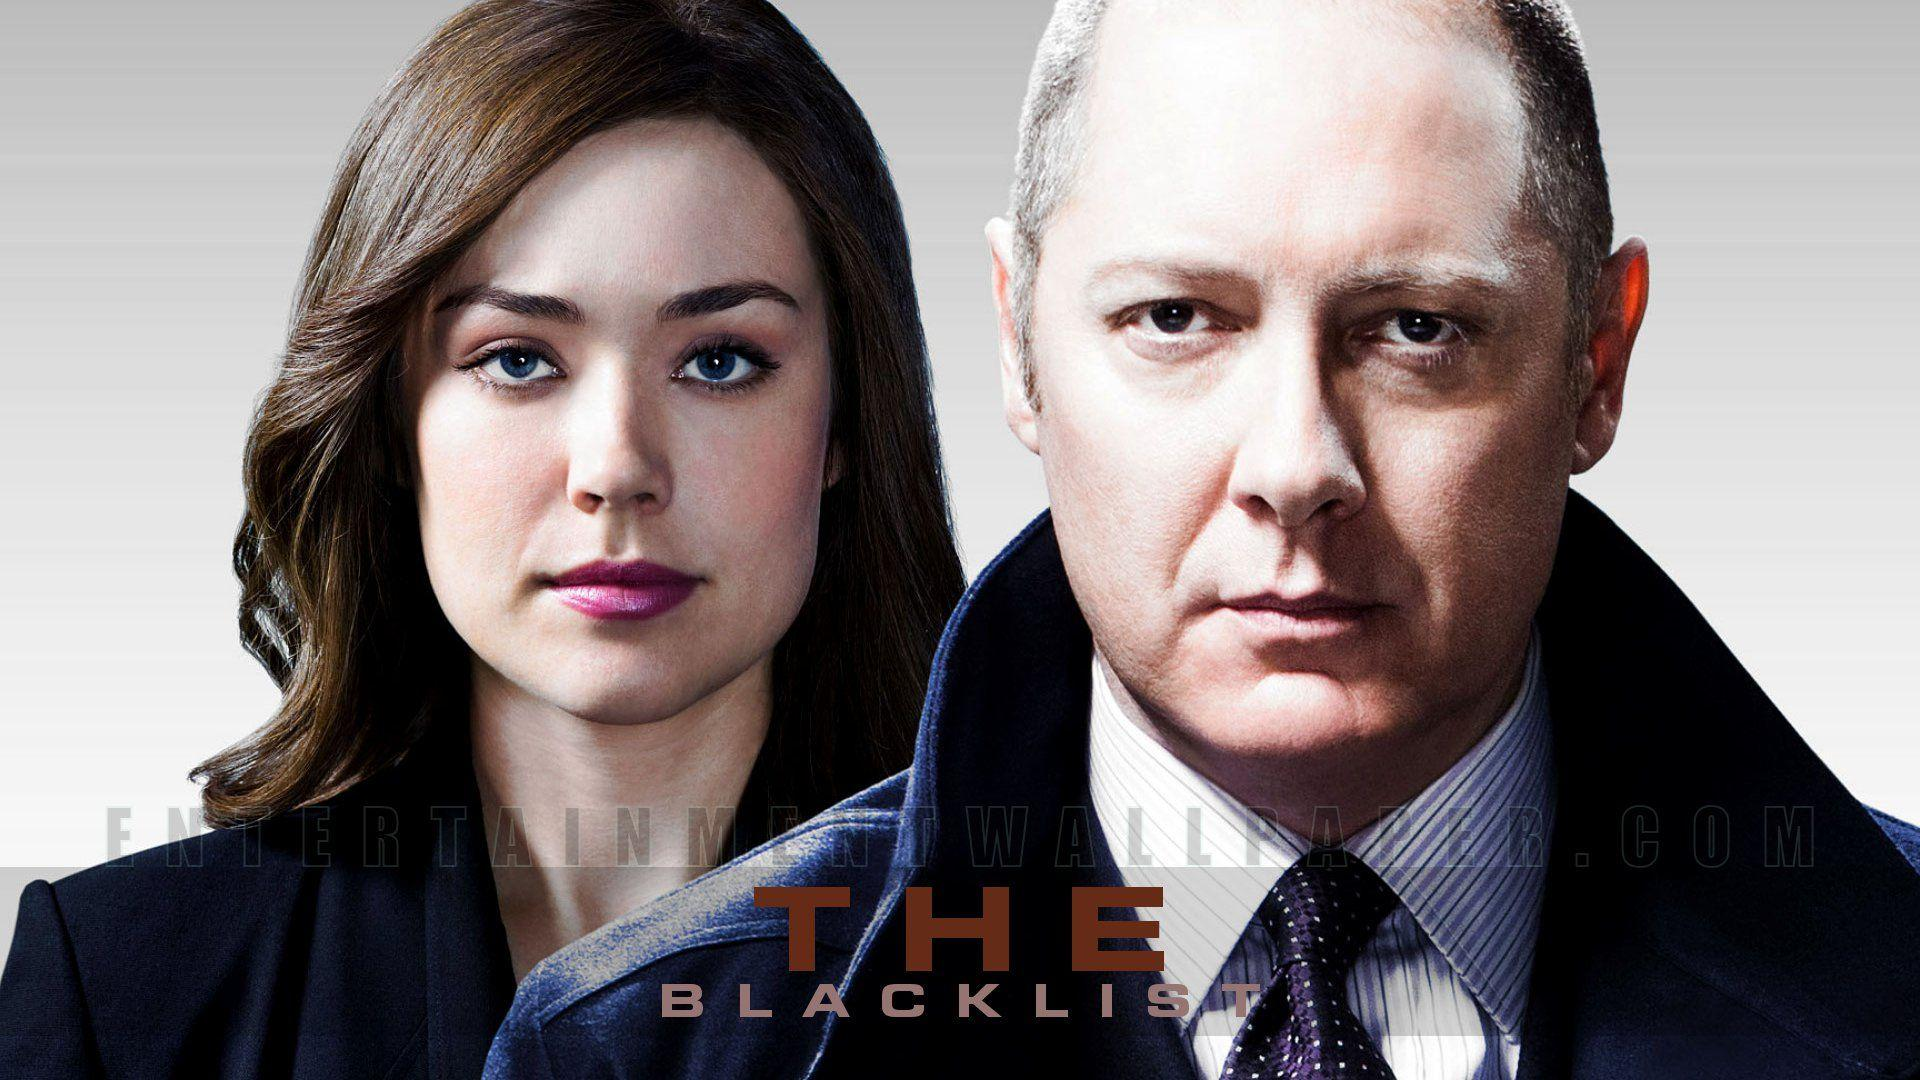 The Blacklist Background 9